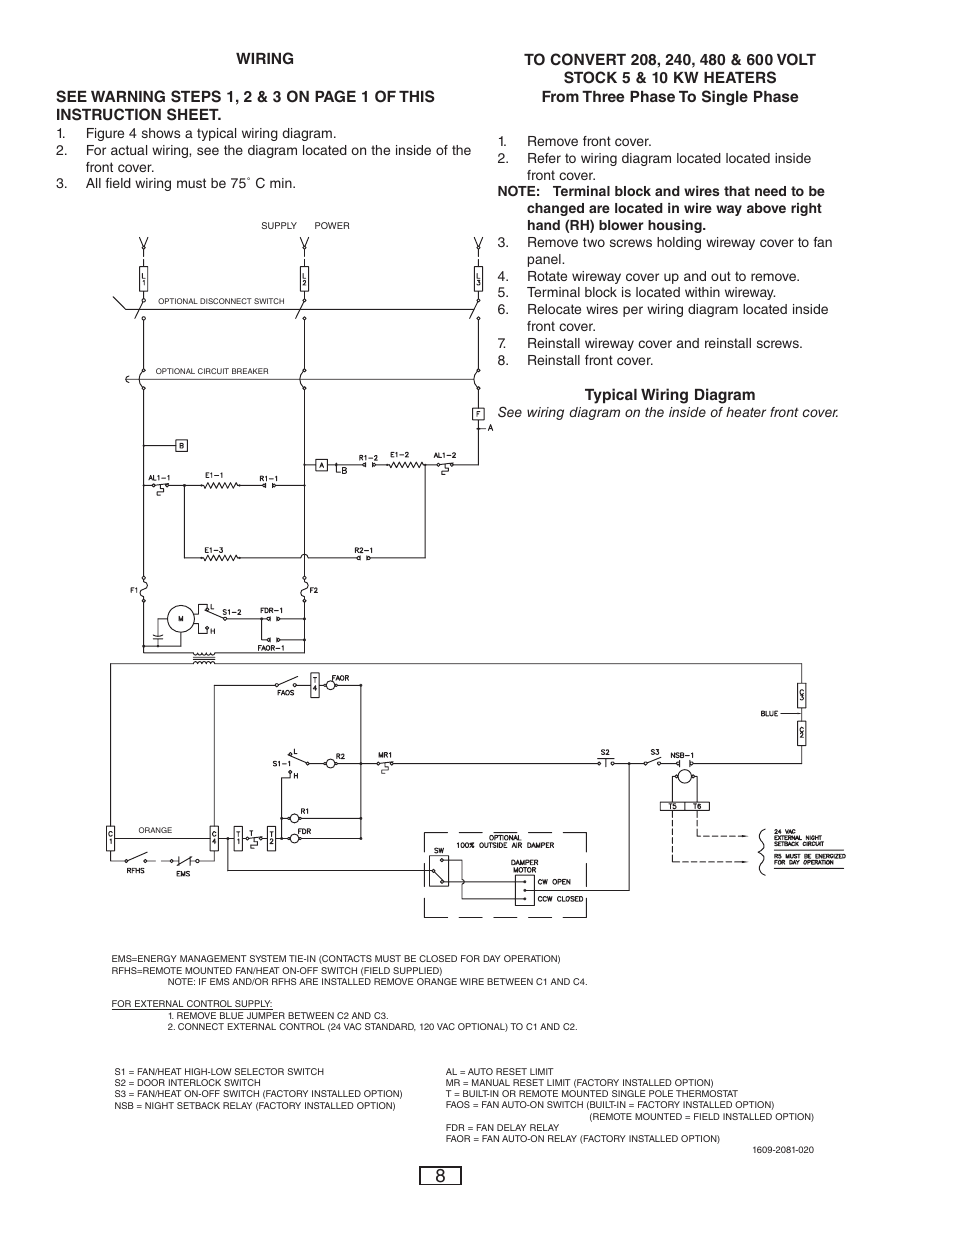 Qmark Cus900 - Stock Cabinet Unit Heater User Manual